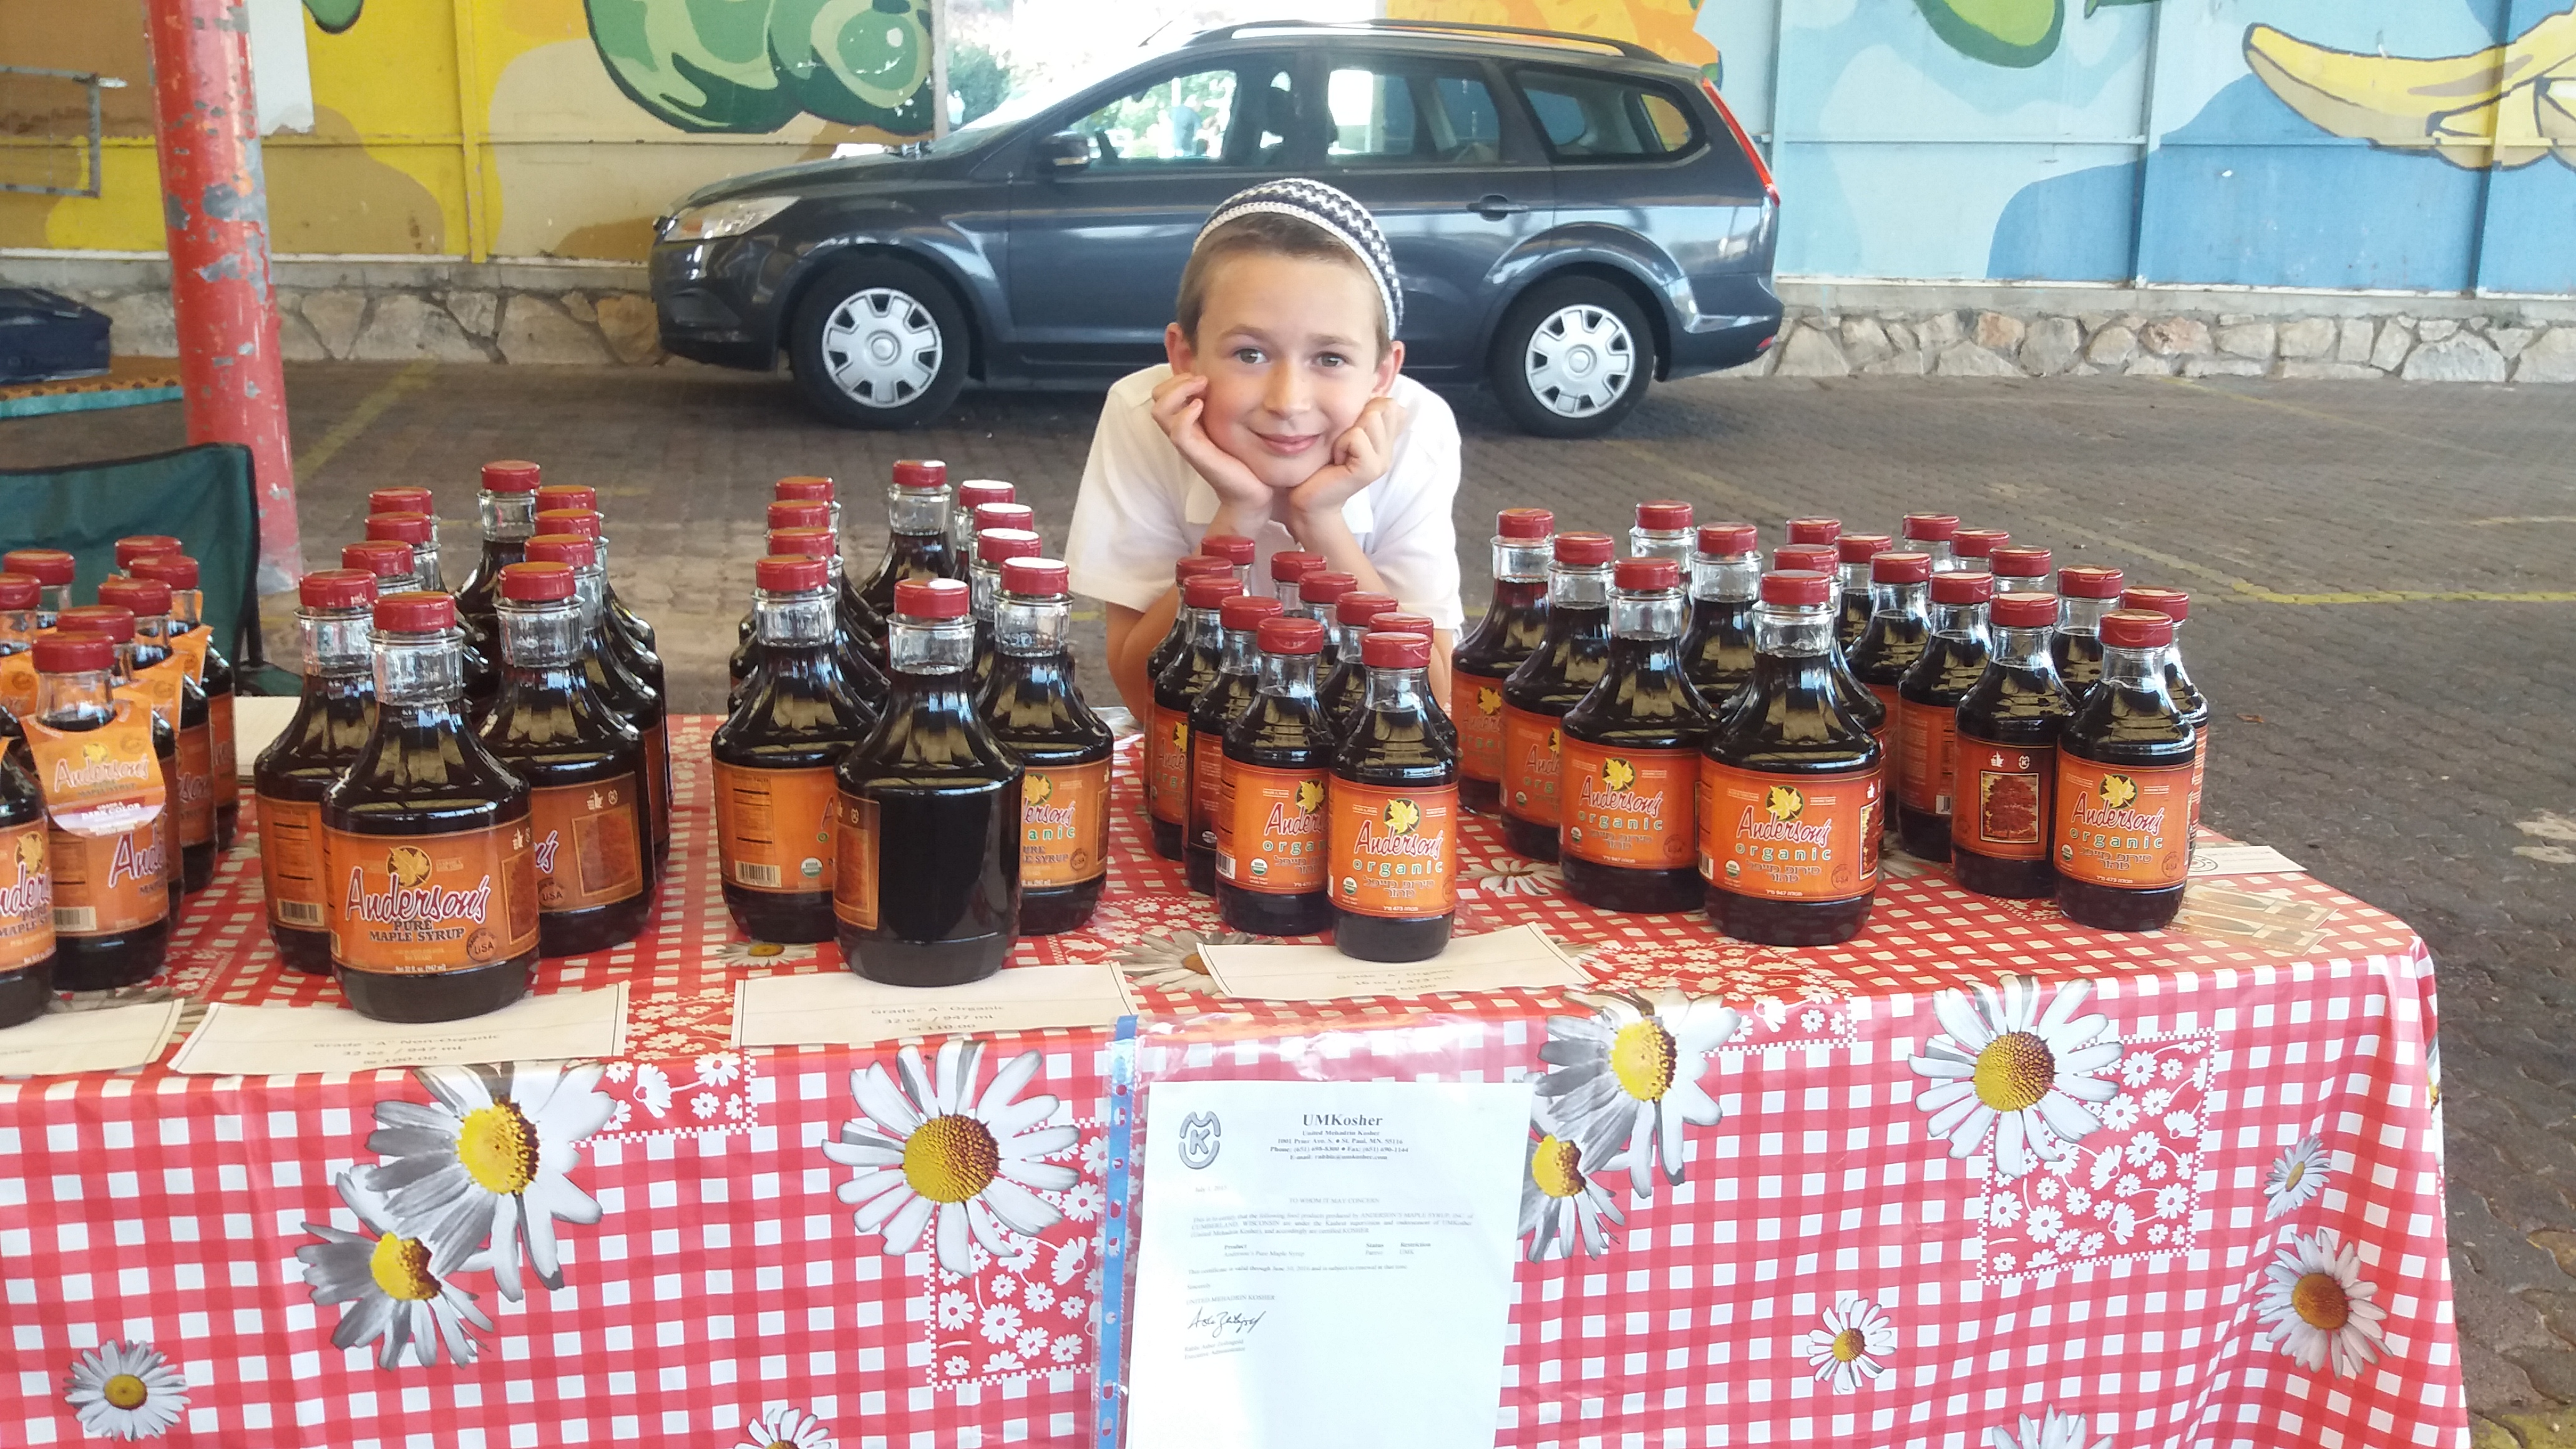 A young boy manning a table loaded with maple syrup at the Karmiel Farmer's Market in Israel